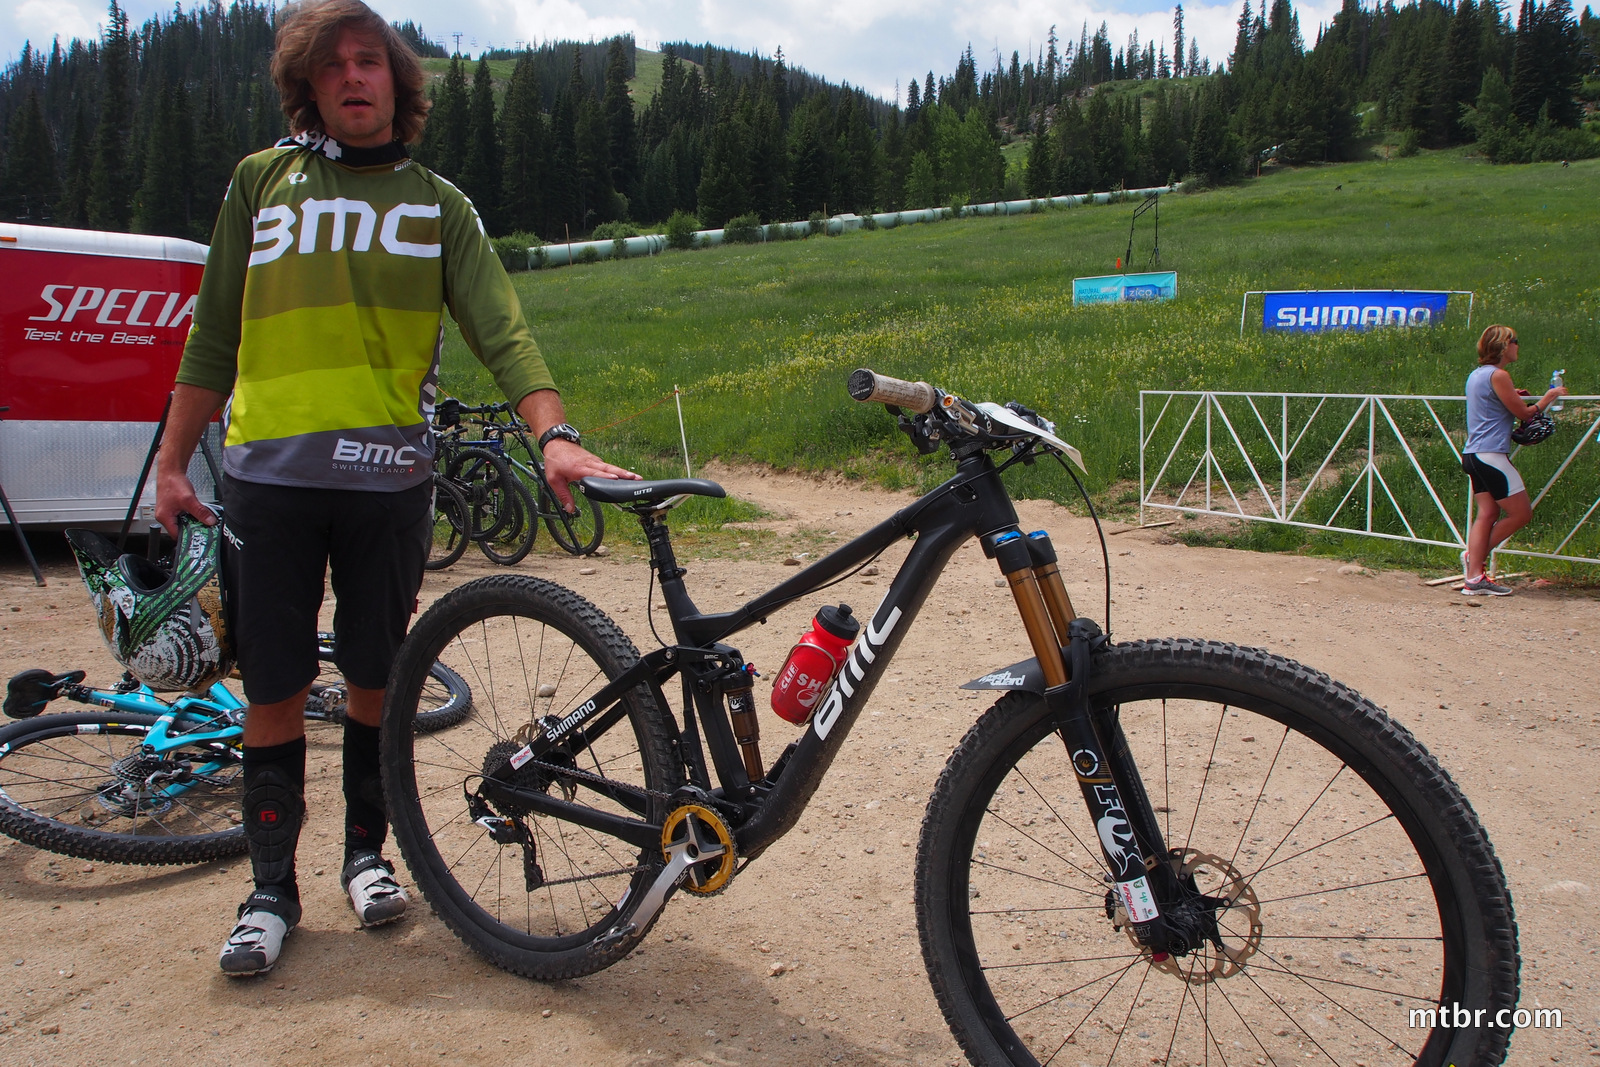 Aaron Bradford with BMC long travel 29er